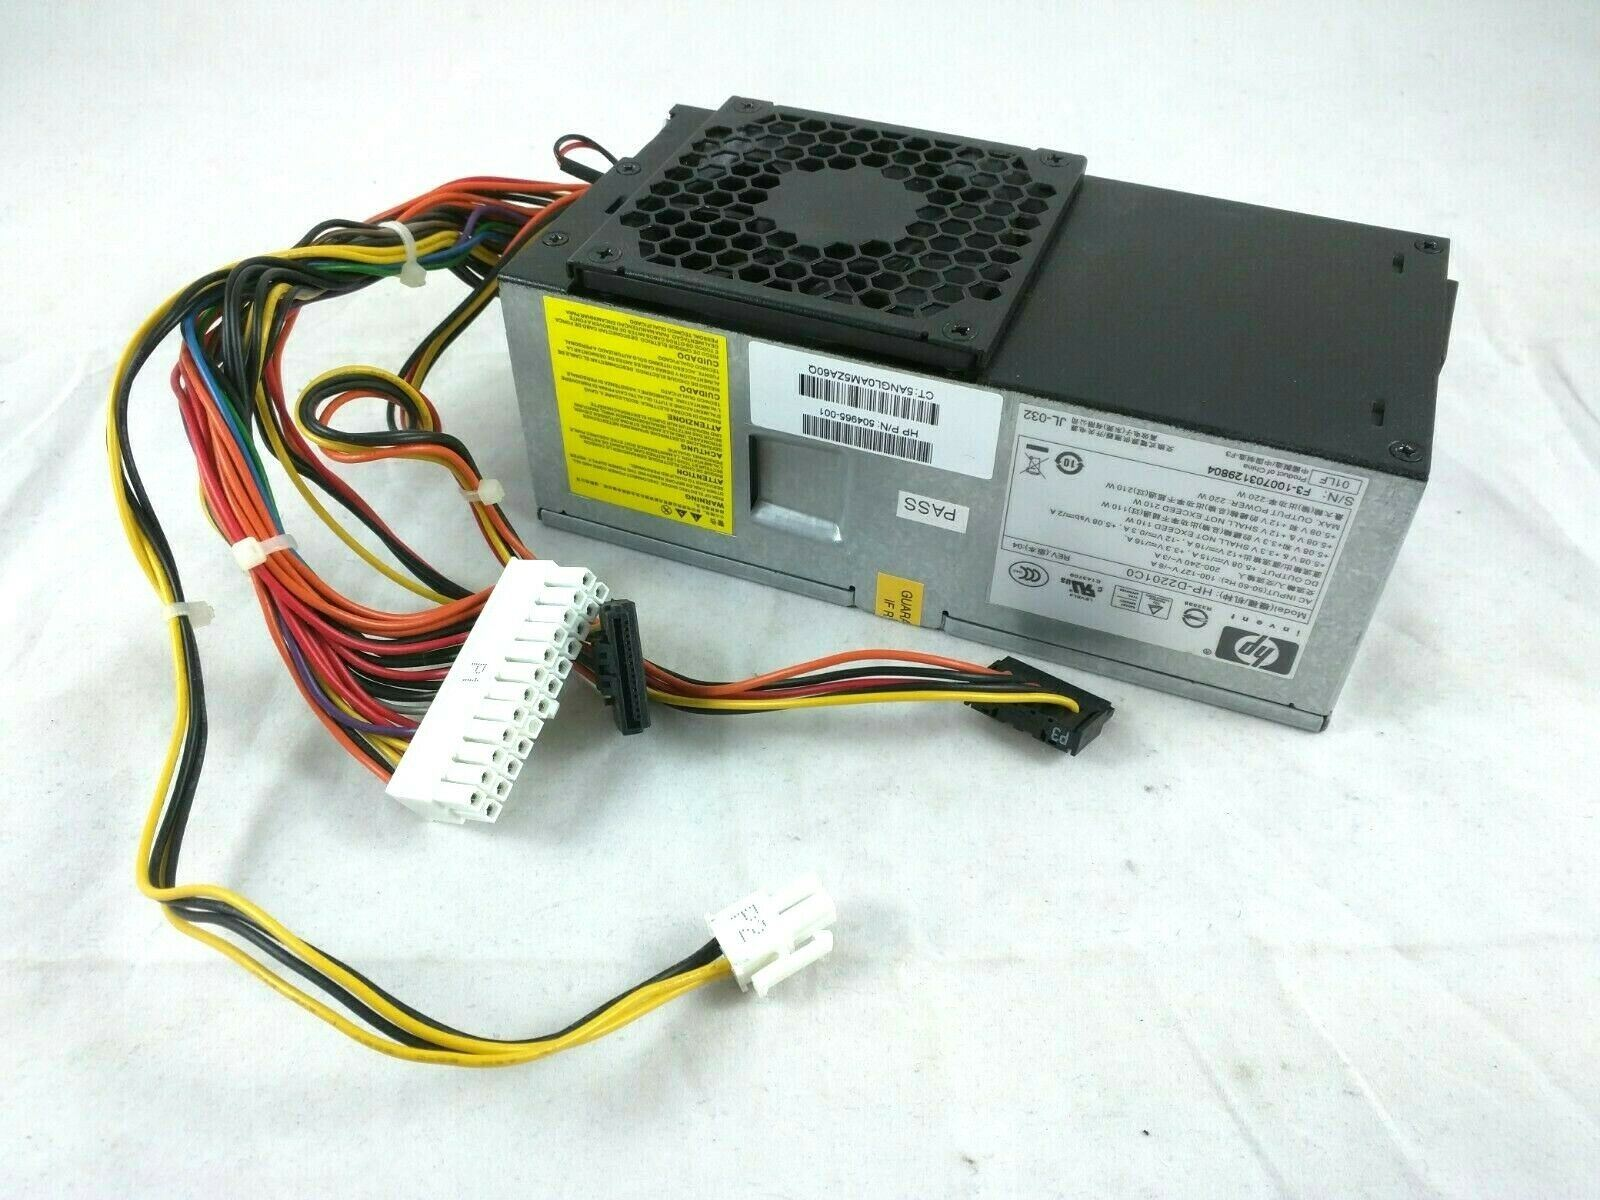 SFF Replacement 220W Power Supply Unit 504965-001 HP-D2201C0 HP Pro 3130